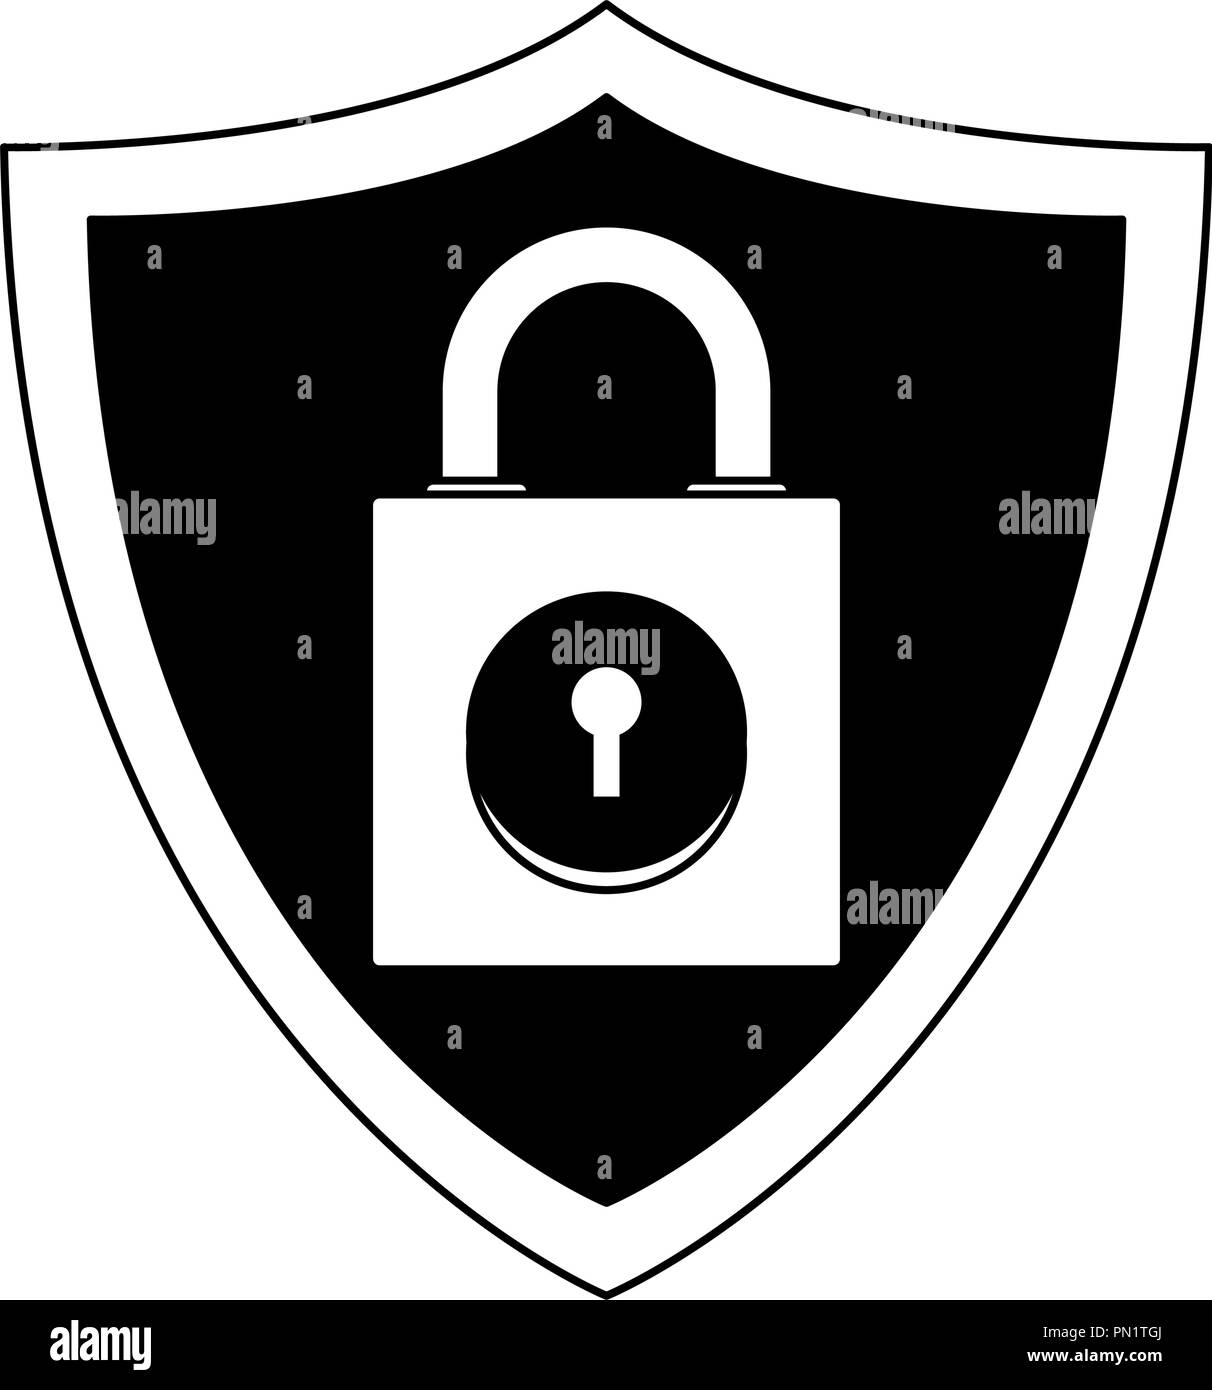 Padlock on shield emblem in black and white - Stock Image